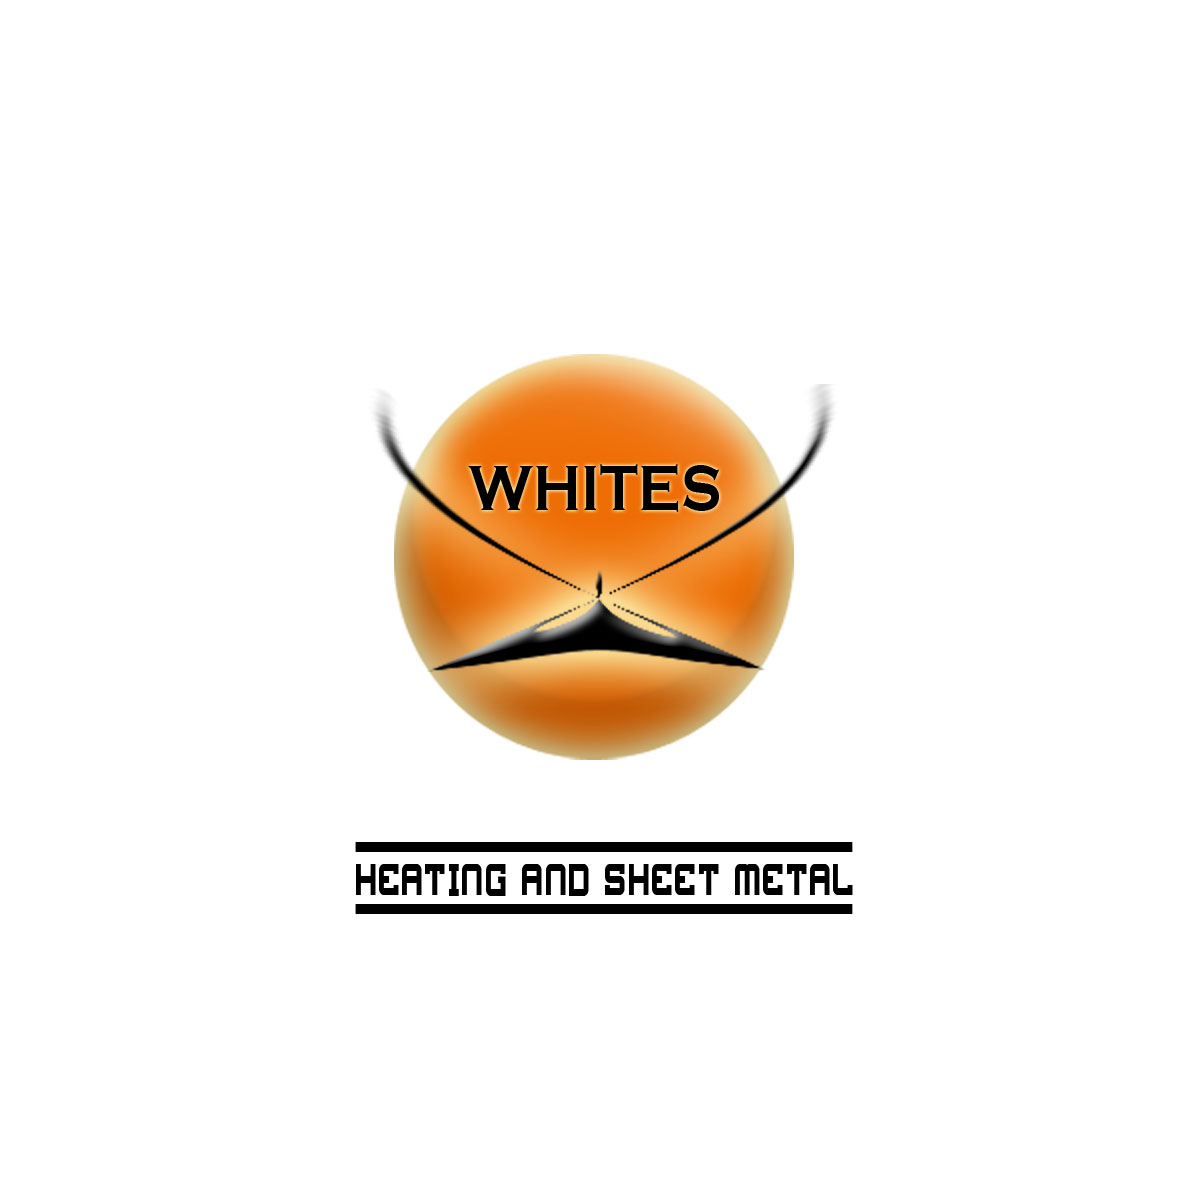 Logo Design by Moag - Entry No. 186 in the Logo Design Contest Imaginative Logo Design for White's Heating and Sheet Metal.